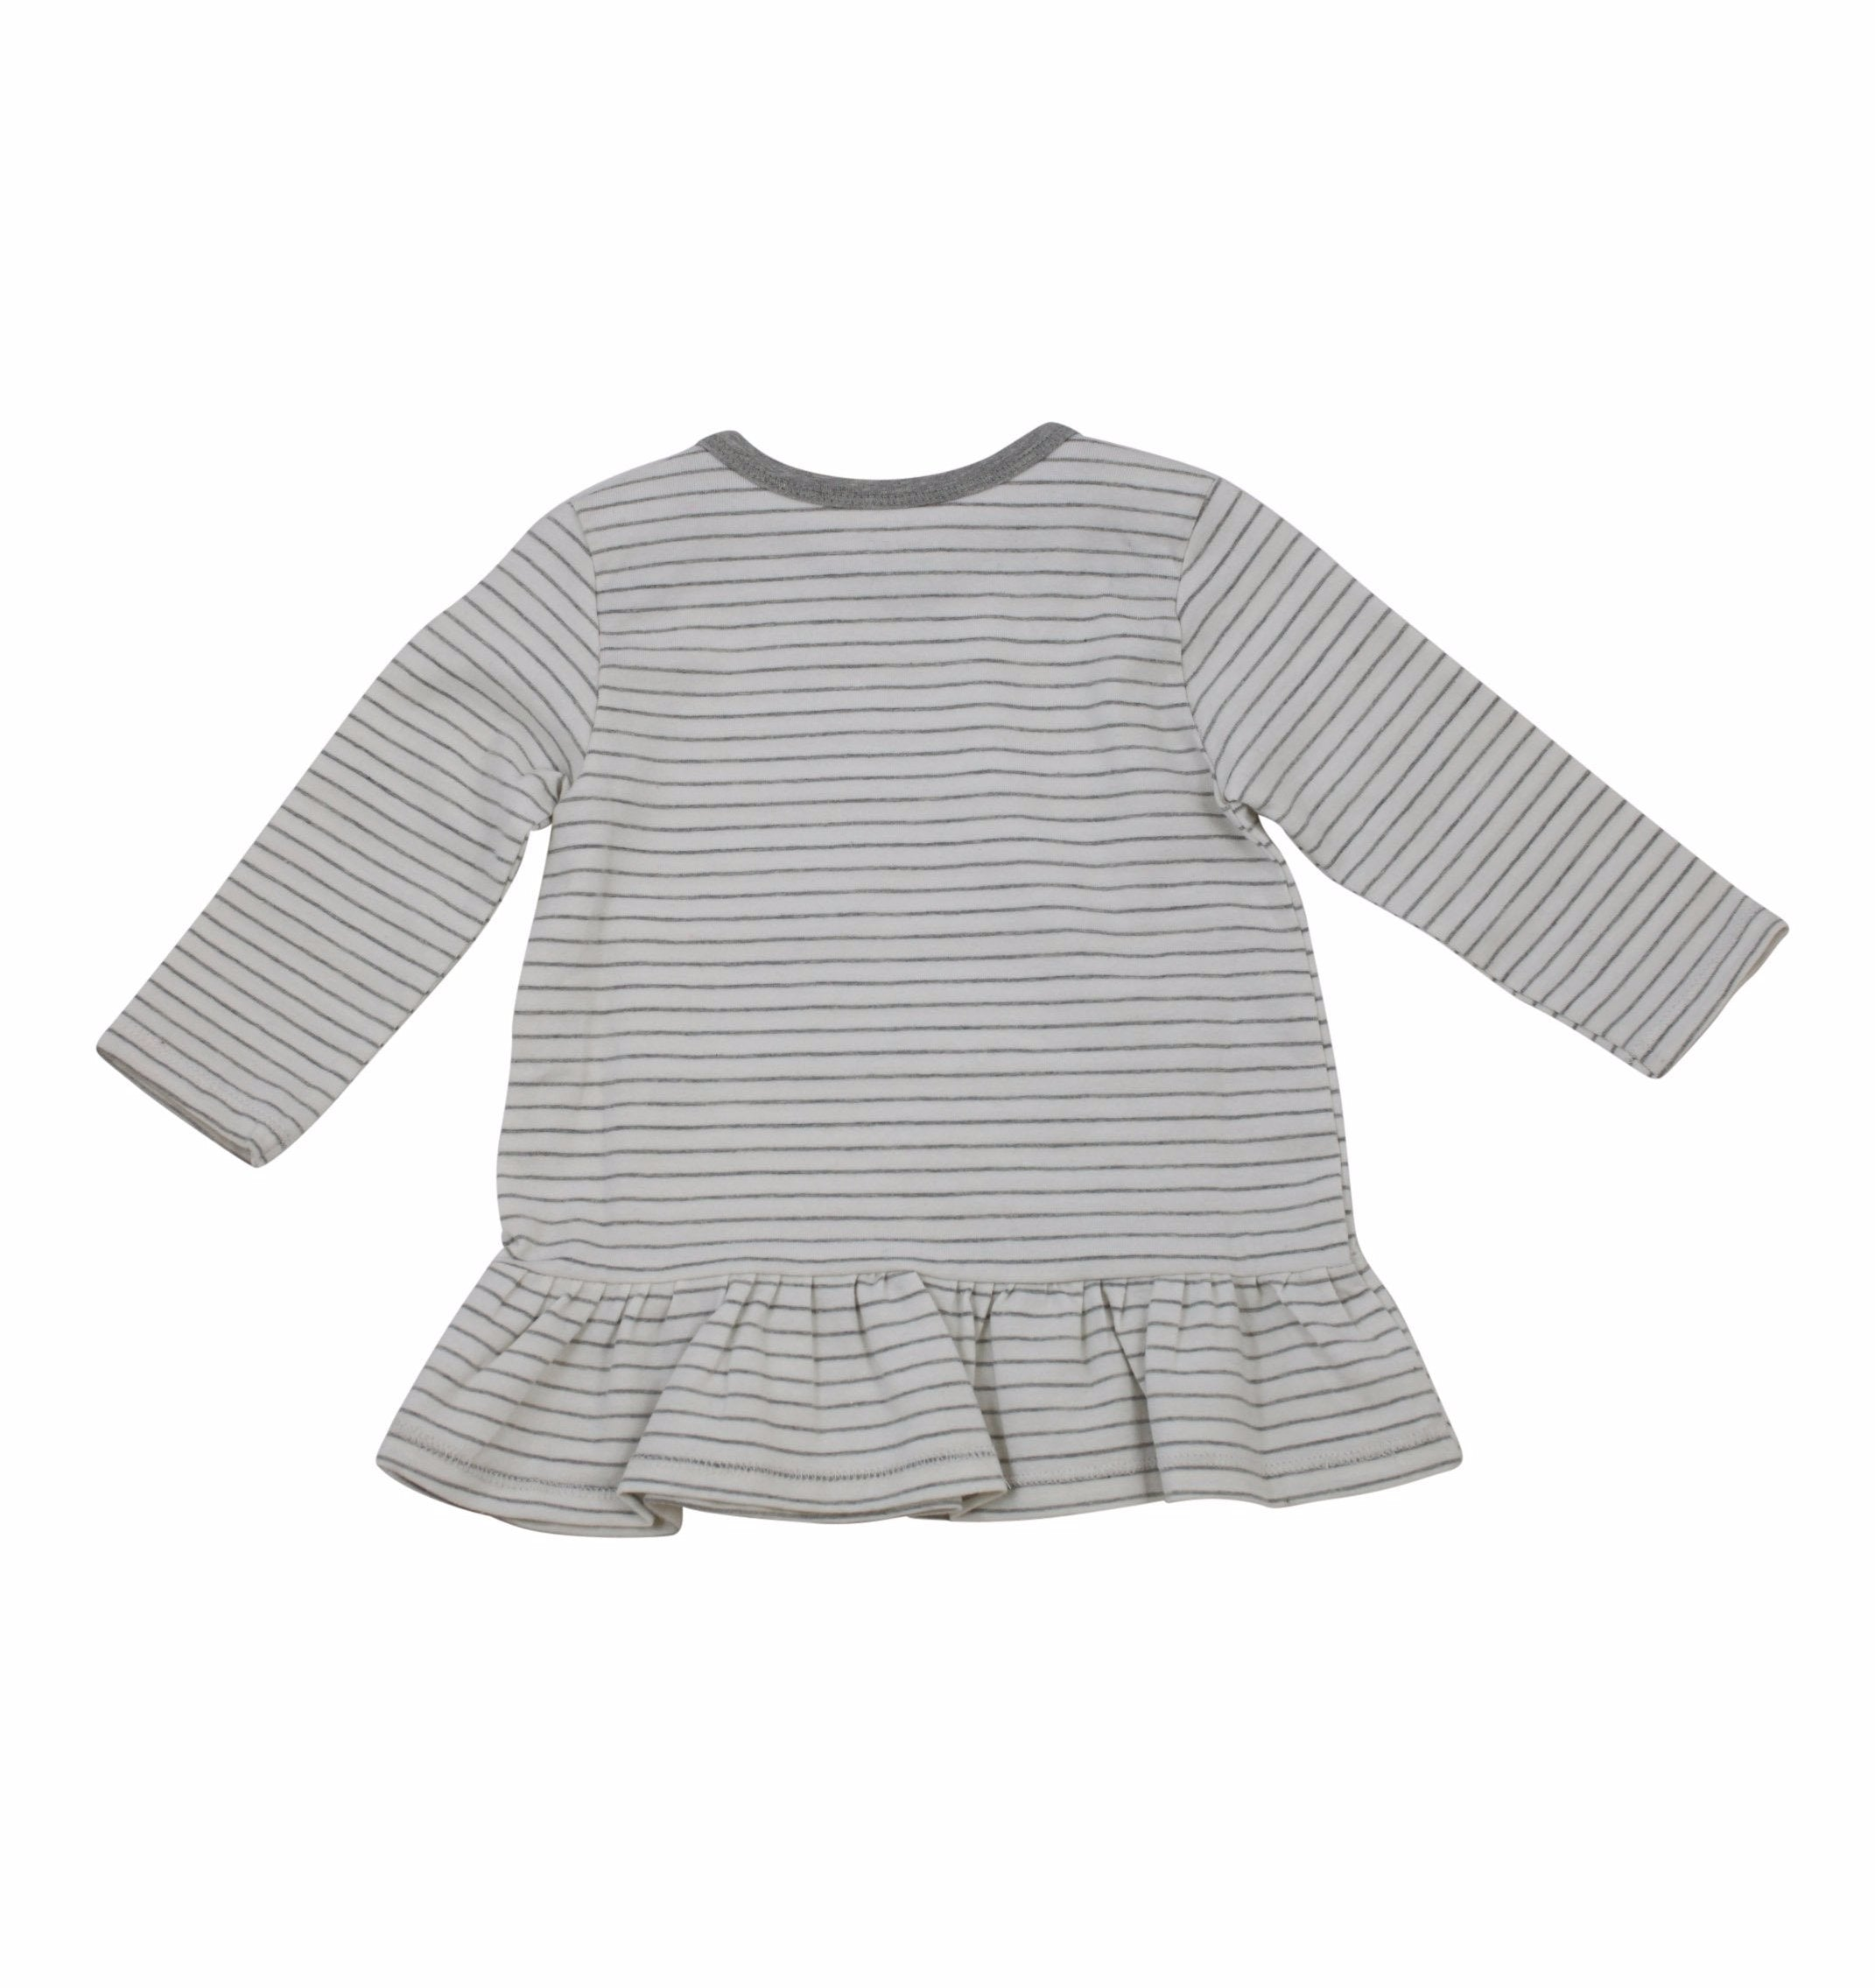 Jersey Dress Set -Grey and Grey Stripes 2